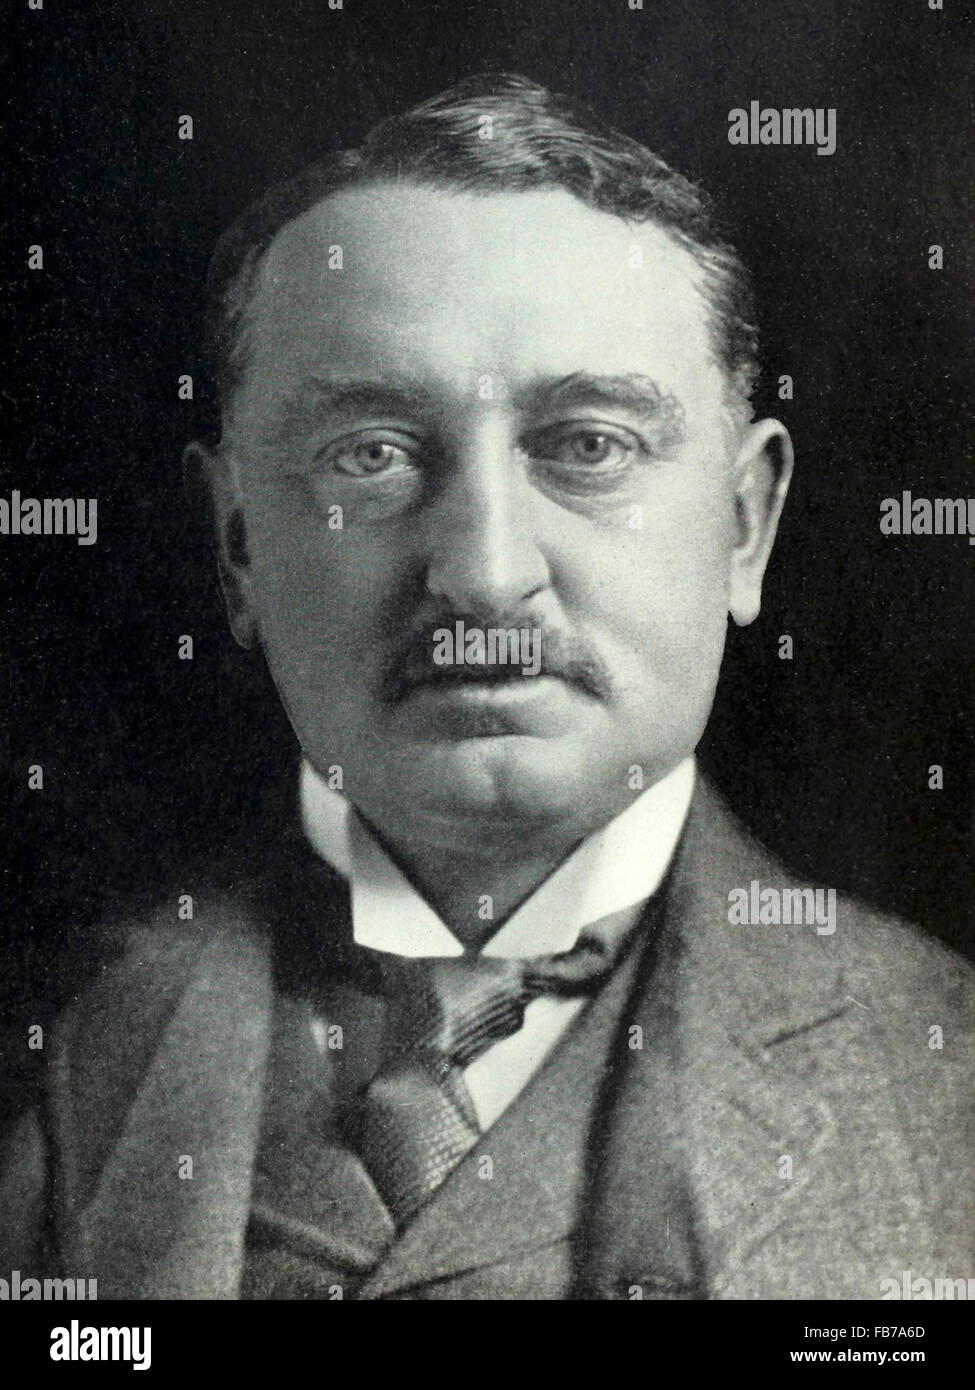 Cecil John Rhodes, British colonial and politician in South Africa - Stock Image